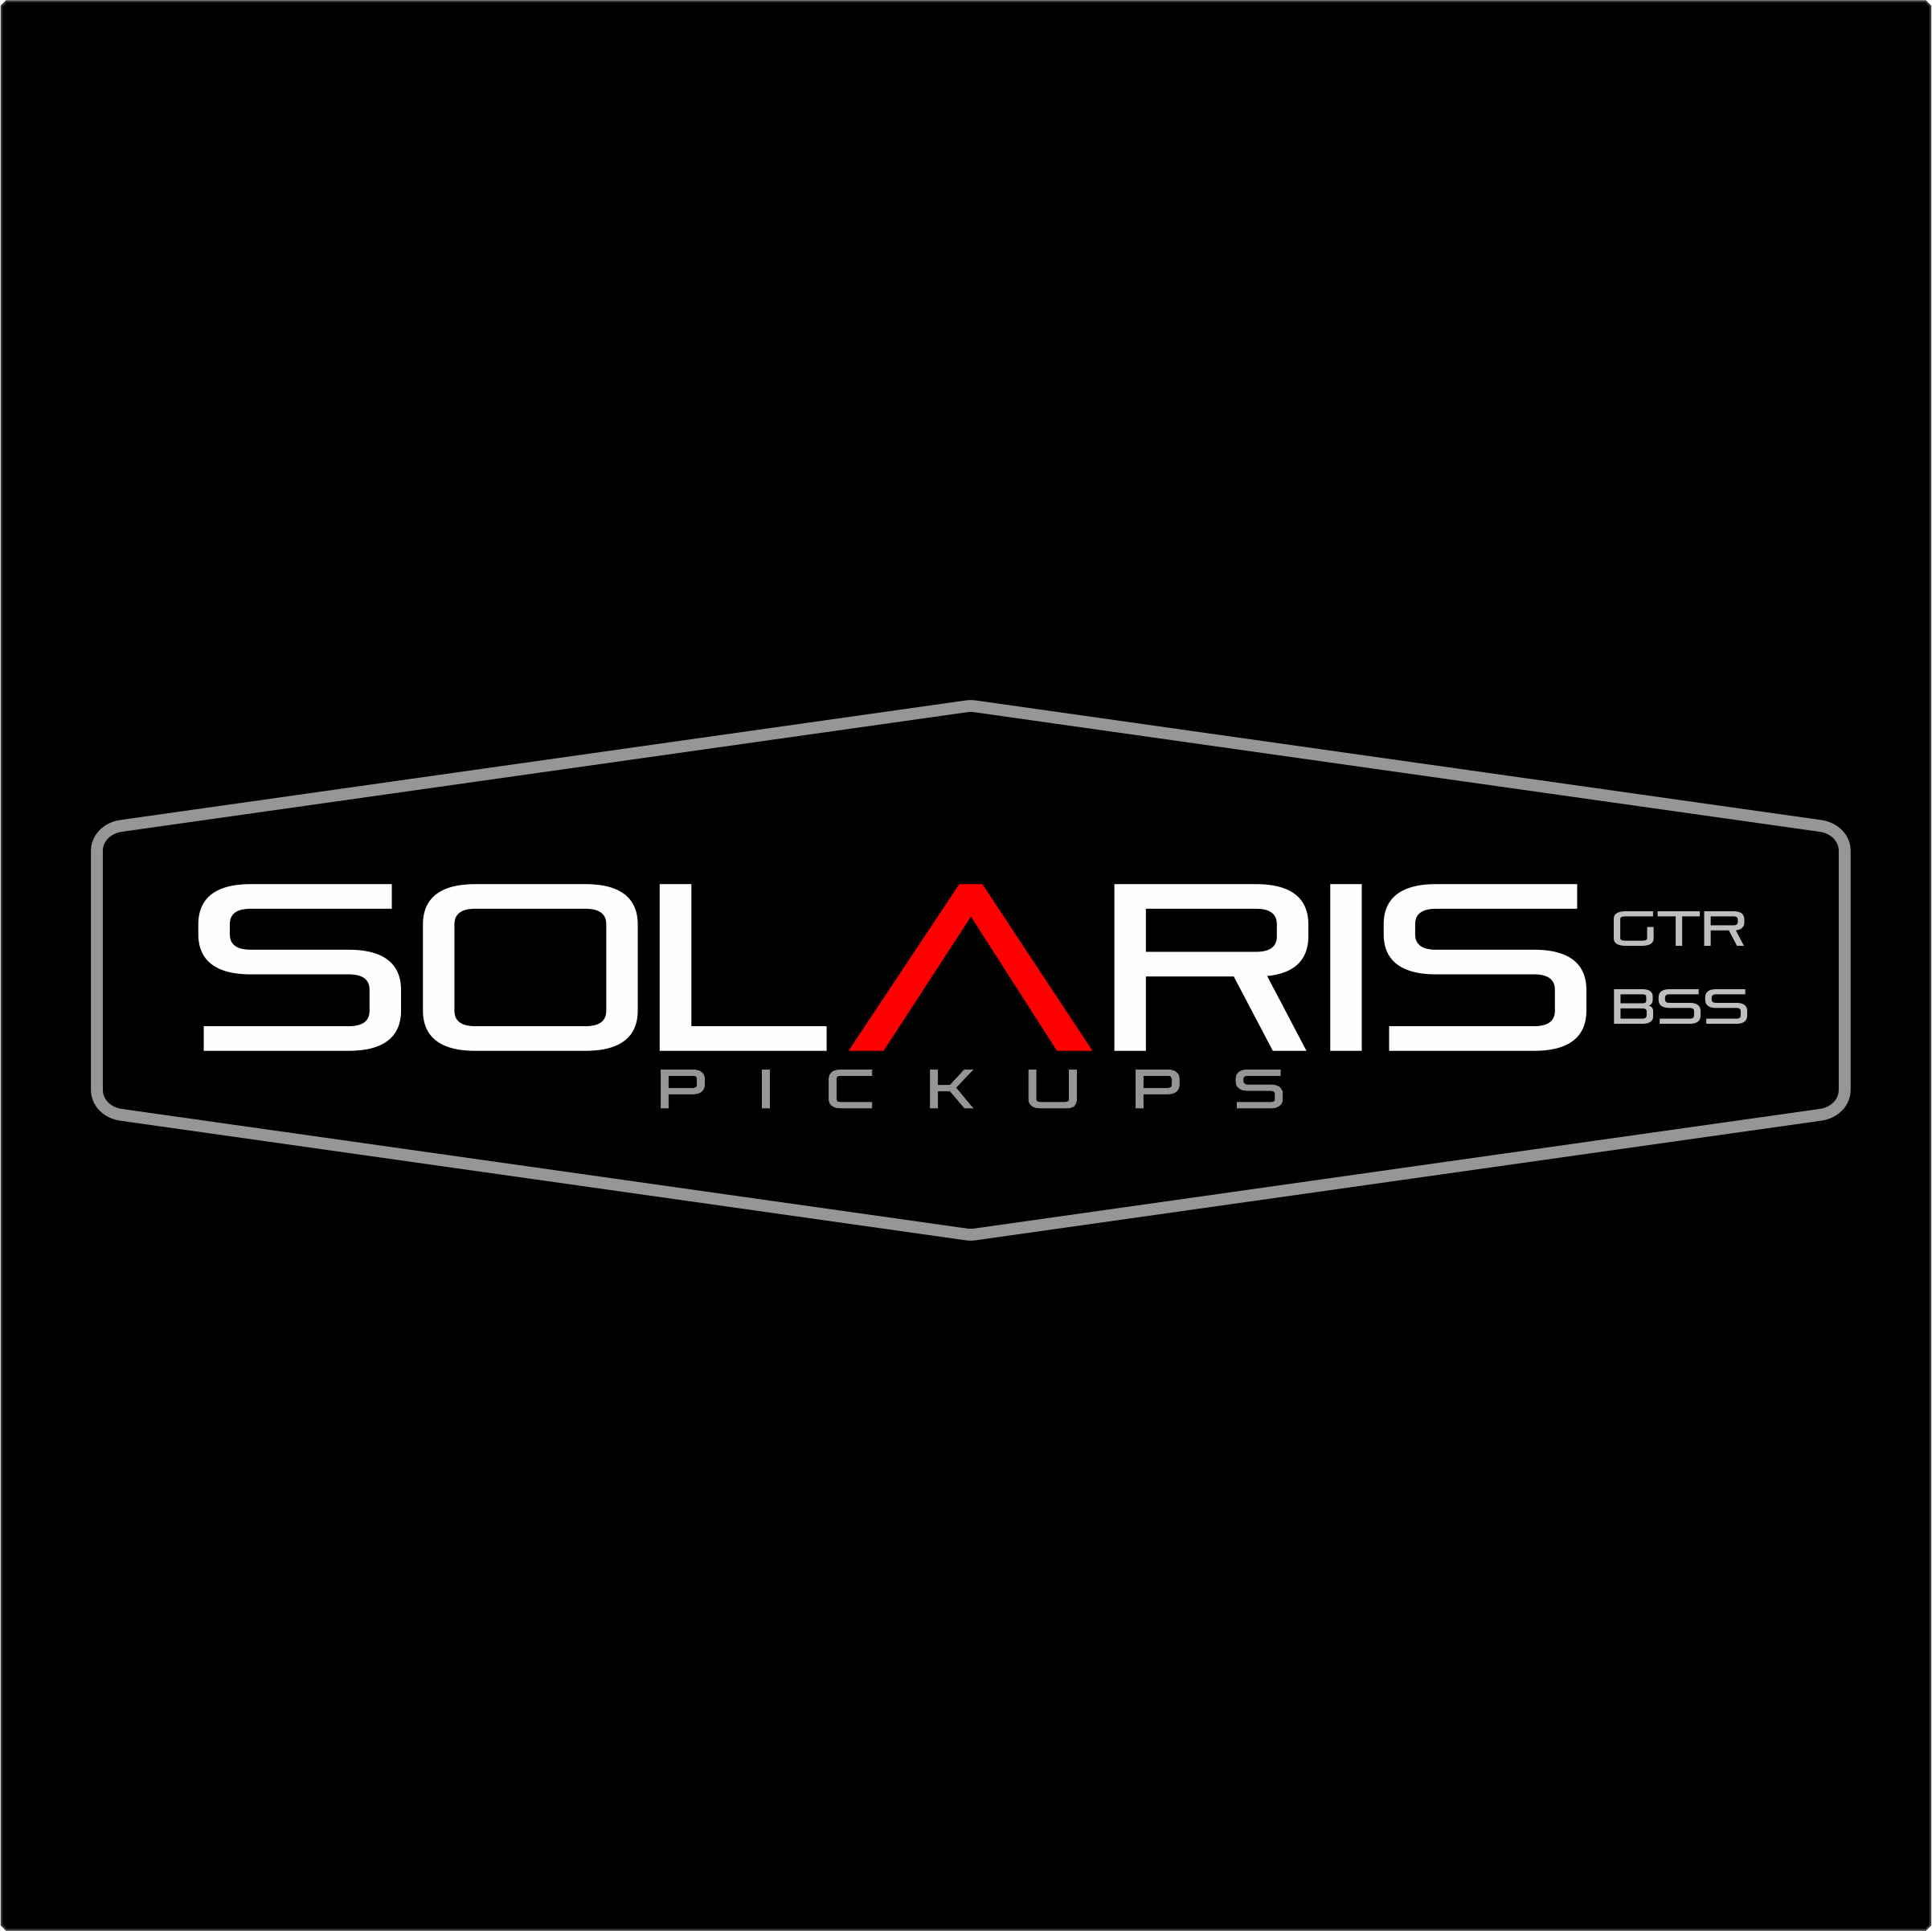 Solaris Pickups